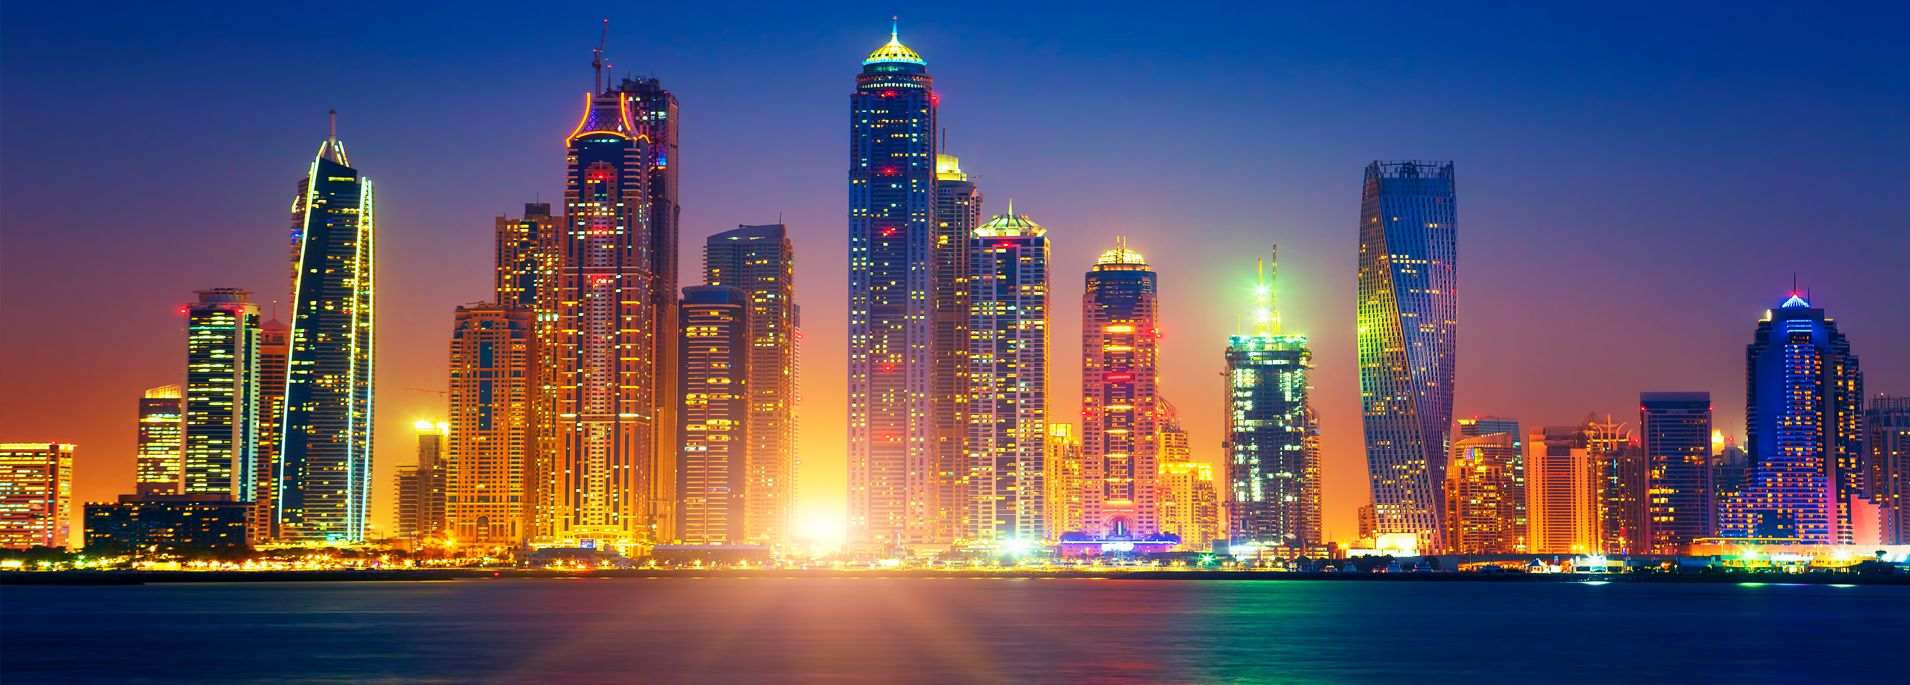 EMEA Region: Dale Ventures has helped companies in Dubai with investment and resources